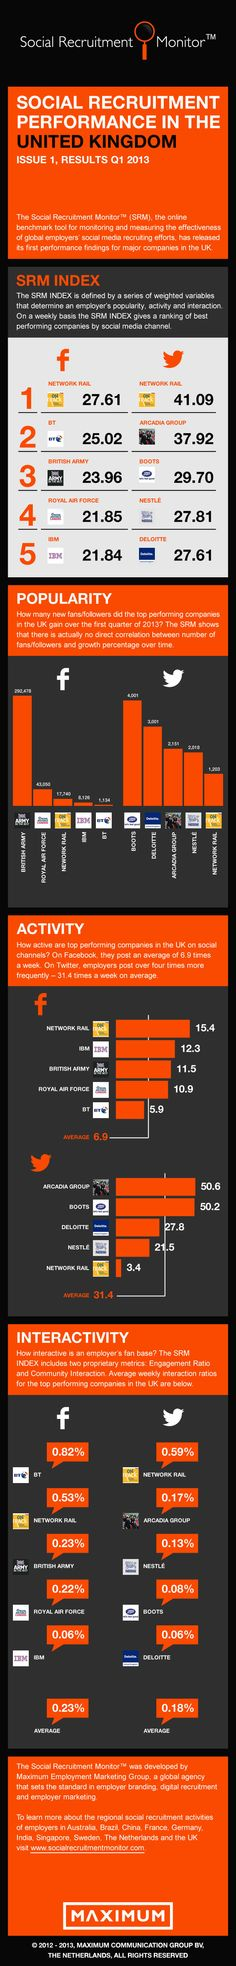 Social Recruitment Performance United Kingdom (Q1-2013) #SocialRecruitment #EmployerBranding #Recruitment #HR #Maximum #UK